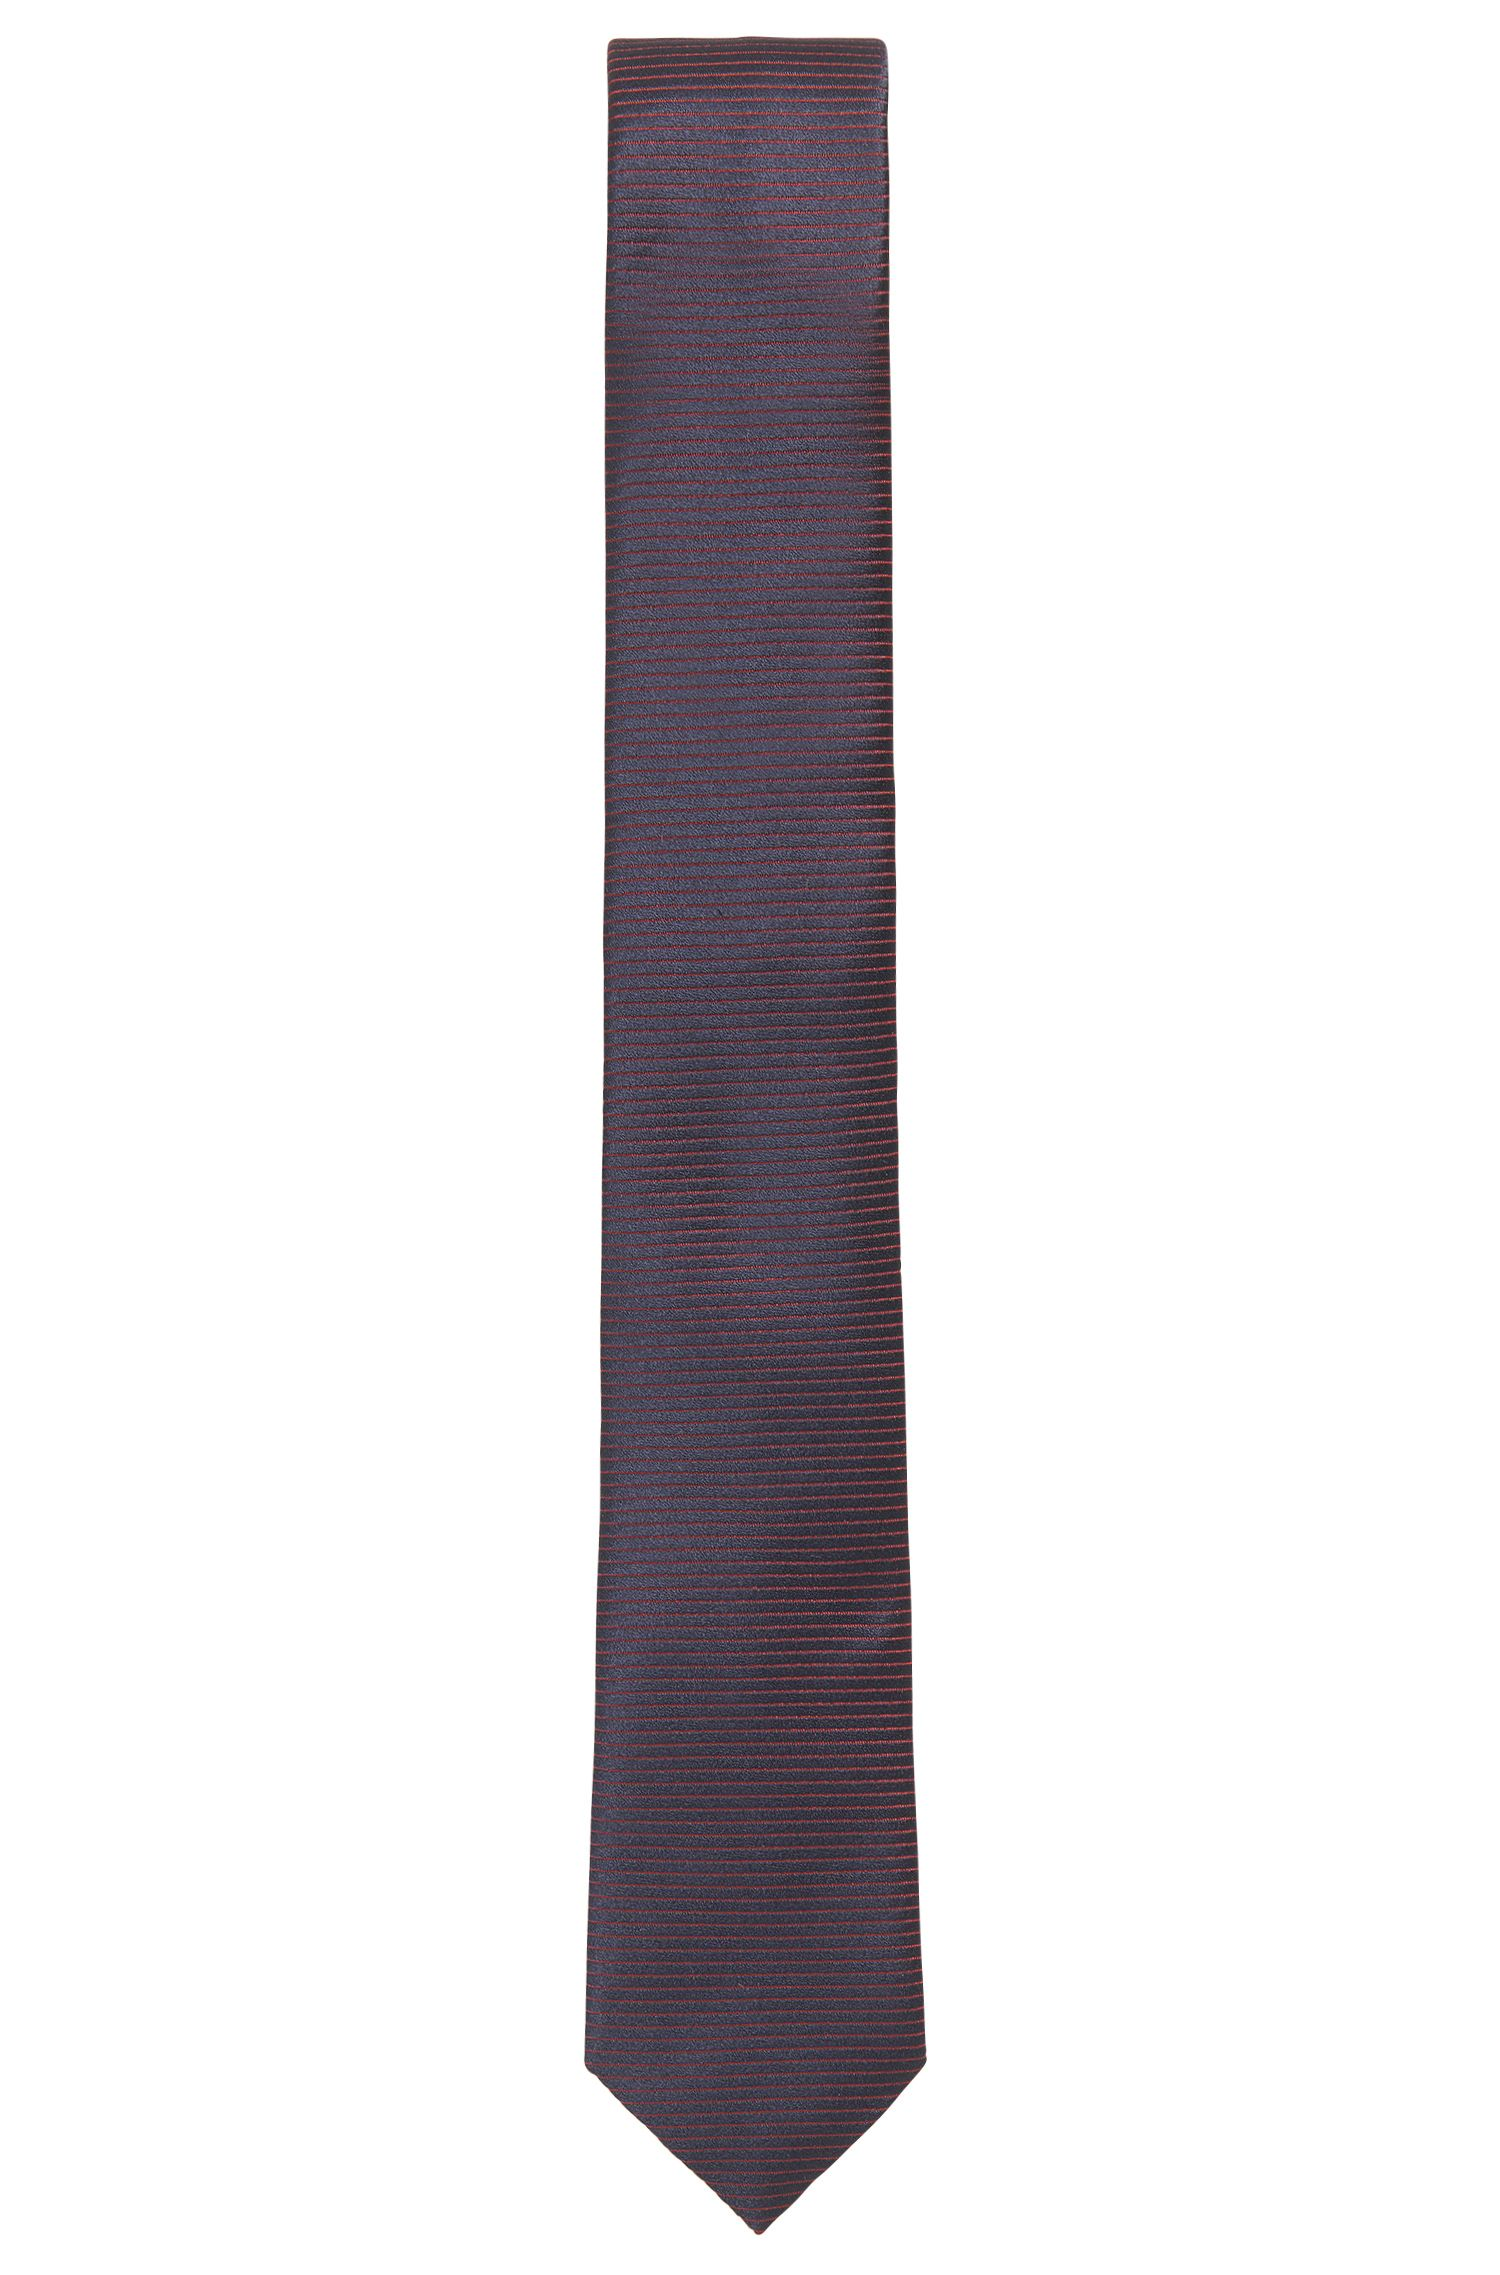 BOSS Tailored Striped Italian Silk Slim Tie, Dark Red